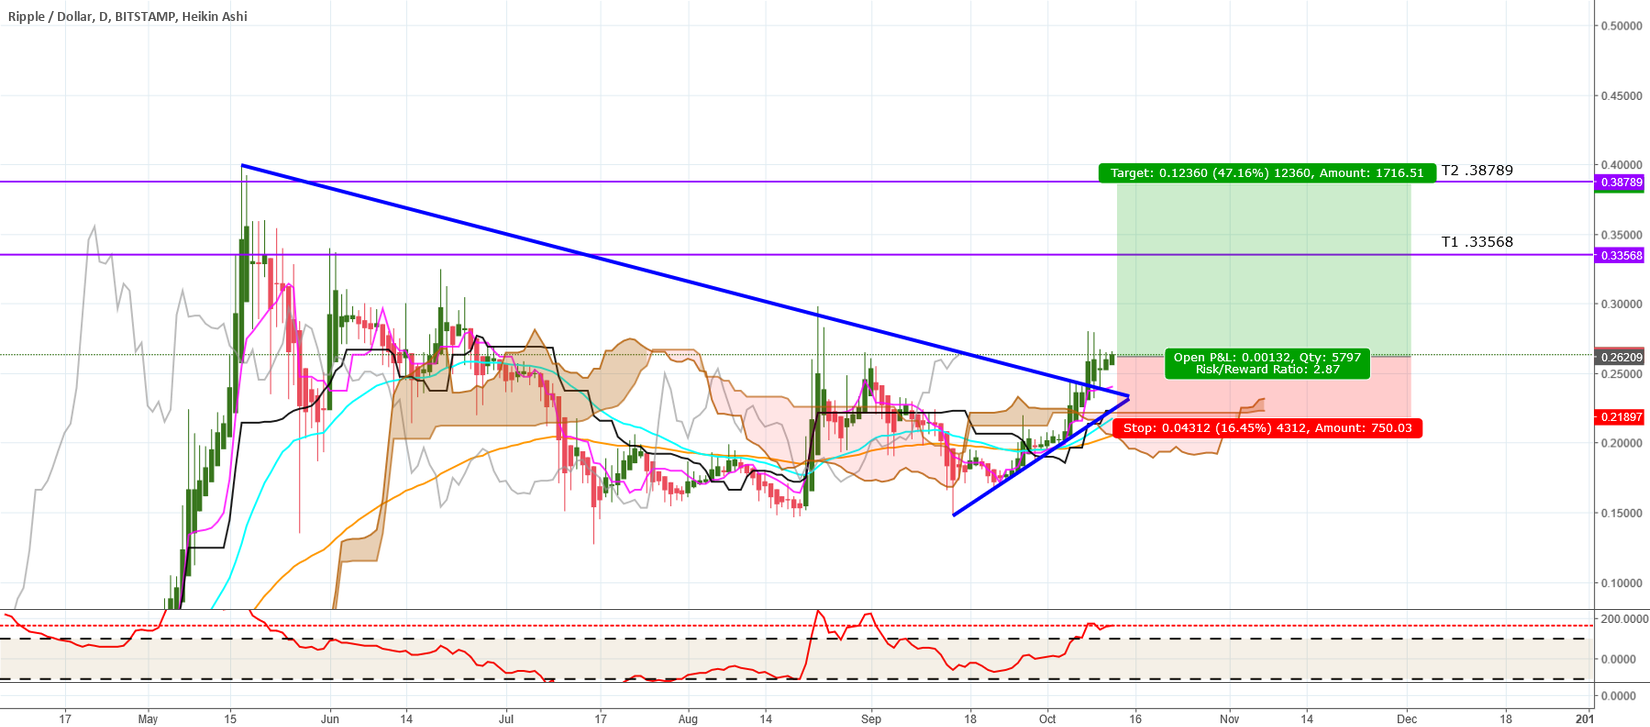 RIPPLE LONG BREAKOUT TRADE current  0.26510 12Oct17